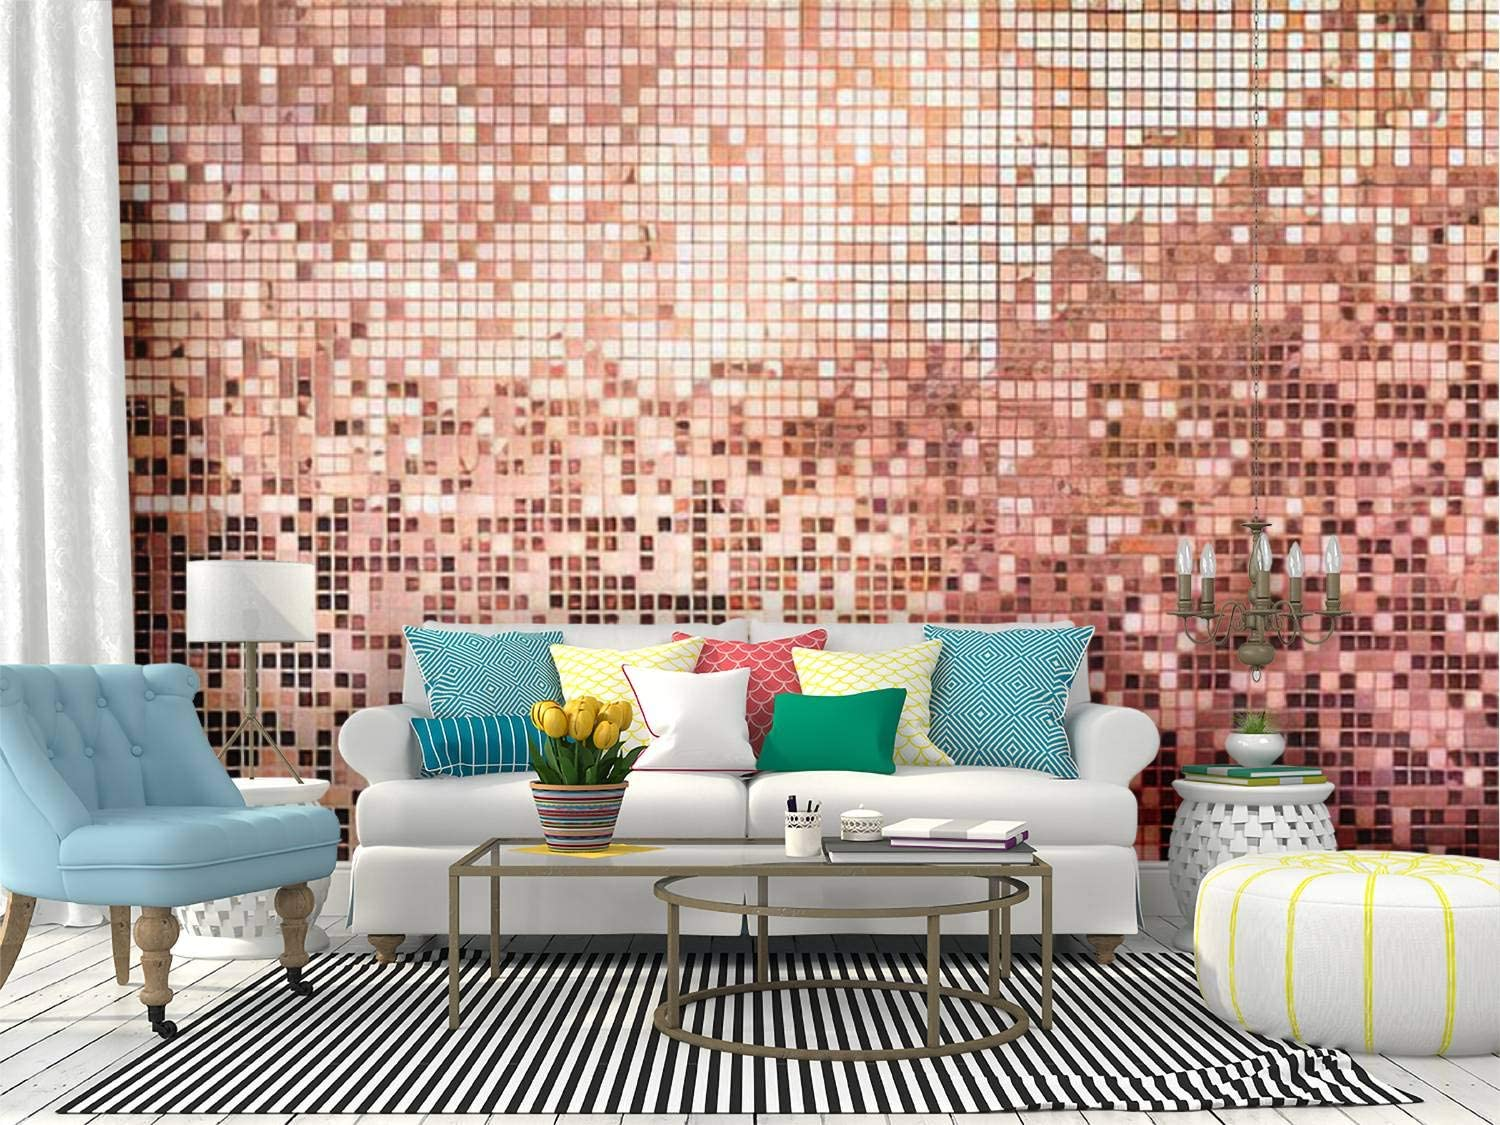 Recethrows Wall Mural Pink Rose Gold Square Mosaic Tiles For Texture Background Peel And Stick Wallpaper Self Adhesive Wallpaper Large Wall Sticker Removable Vinyl Film Roll Shelf Paper Home Decor Home